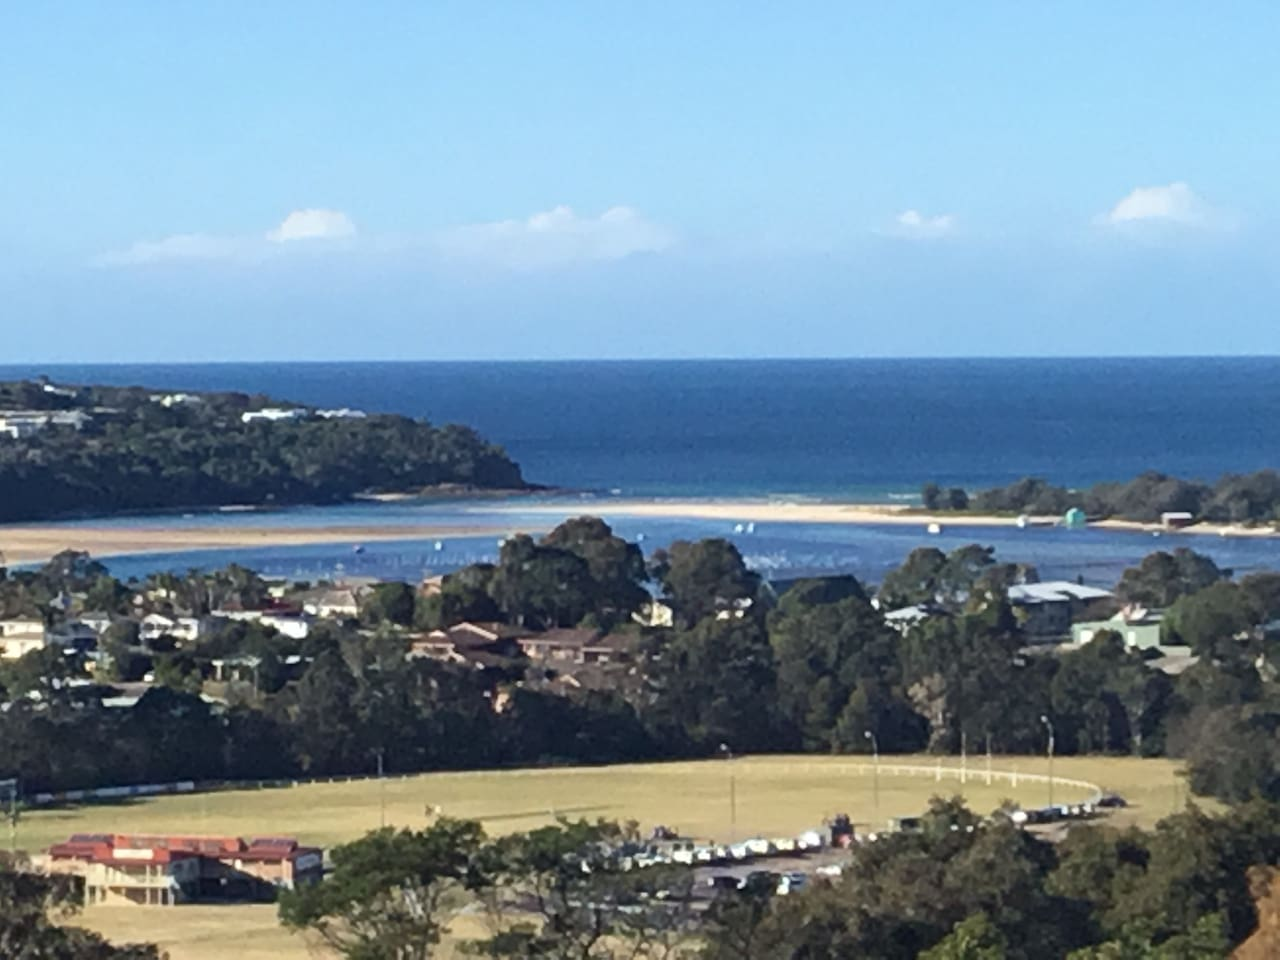 Deck view to Merimbula Bar- Surf or whales today?